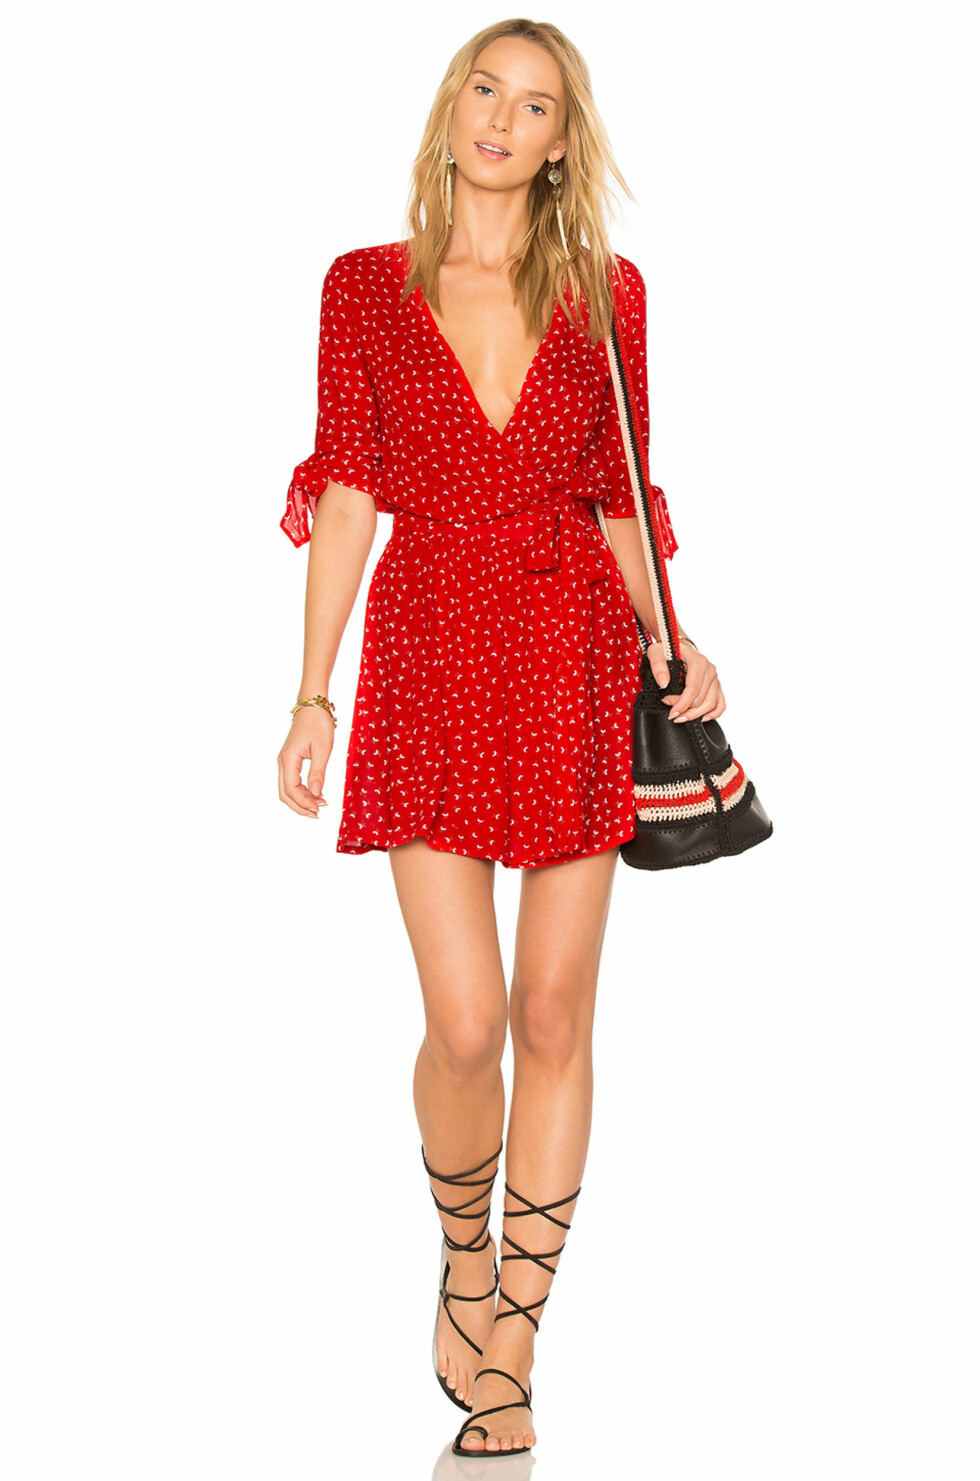 Kjole fra Faithfull The Brand via Revolve.com   kr 1180   http://www.revolve.com/faithfull-the-brand-x-revolve-oslo-dress-in-rosario-red/dp/FAIB-WD106/?d=Womens&d=Womens&page=1&lc=10&itrownum=4&itcurrpage=1&itview=01&plpSrc=/r/Brands.jsp?&s=c&c=Dresses&color%5B%5D=red&color%5B%5D=pink&color%5B%5D=red&sortBy=featured&product=FAIB-WD106&